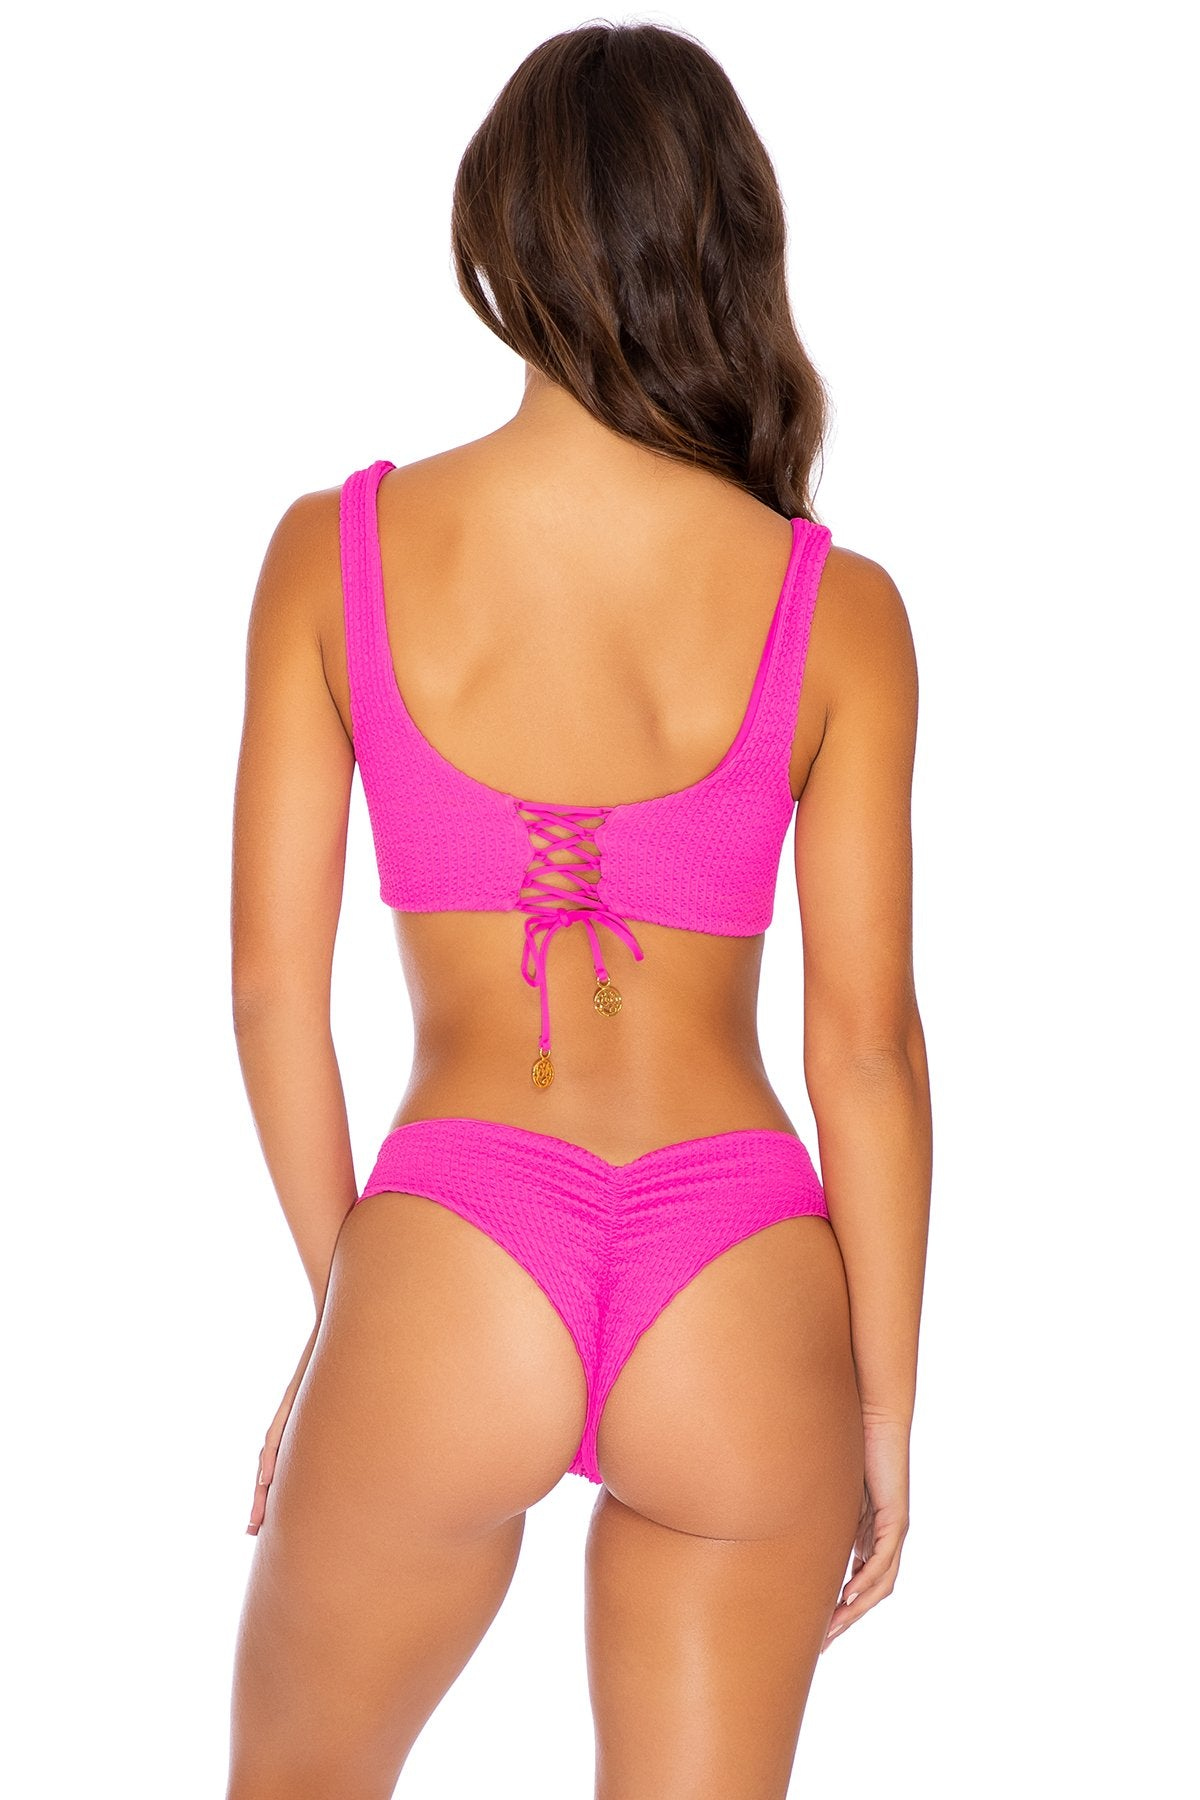 PURA CURIOSIDAD - Open Front Bralette & Seamless Wavey Ruched Back Bottom • Pretty Pink (3937623539814)